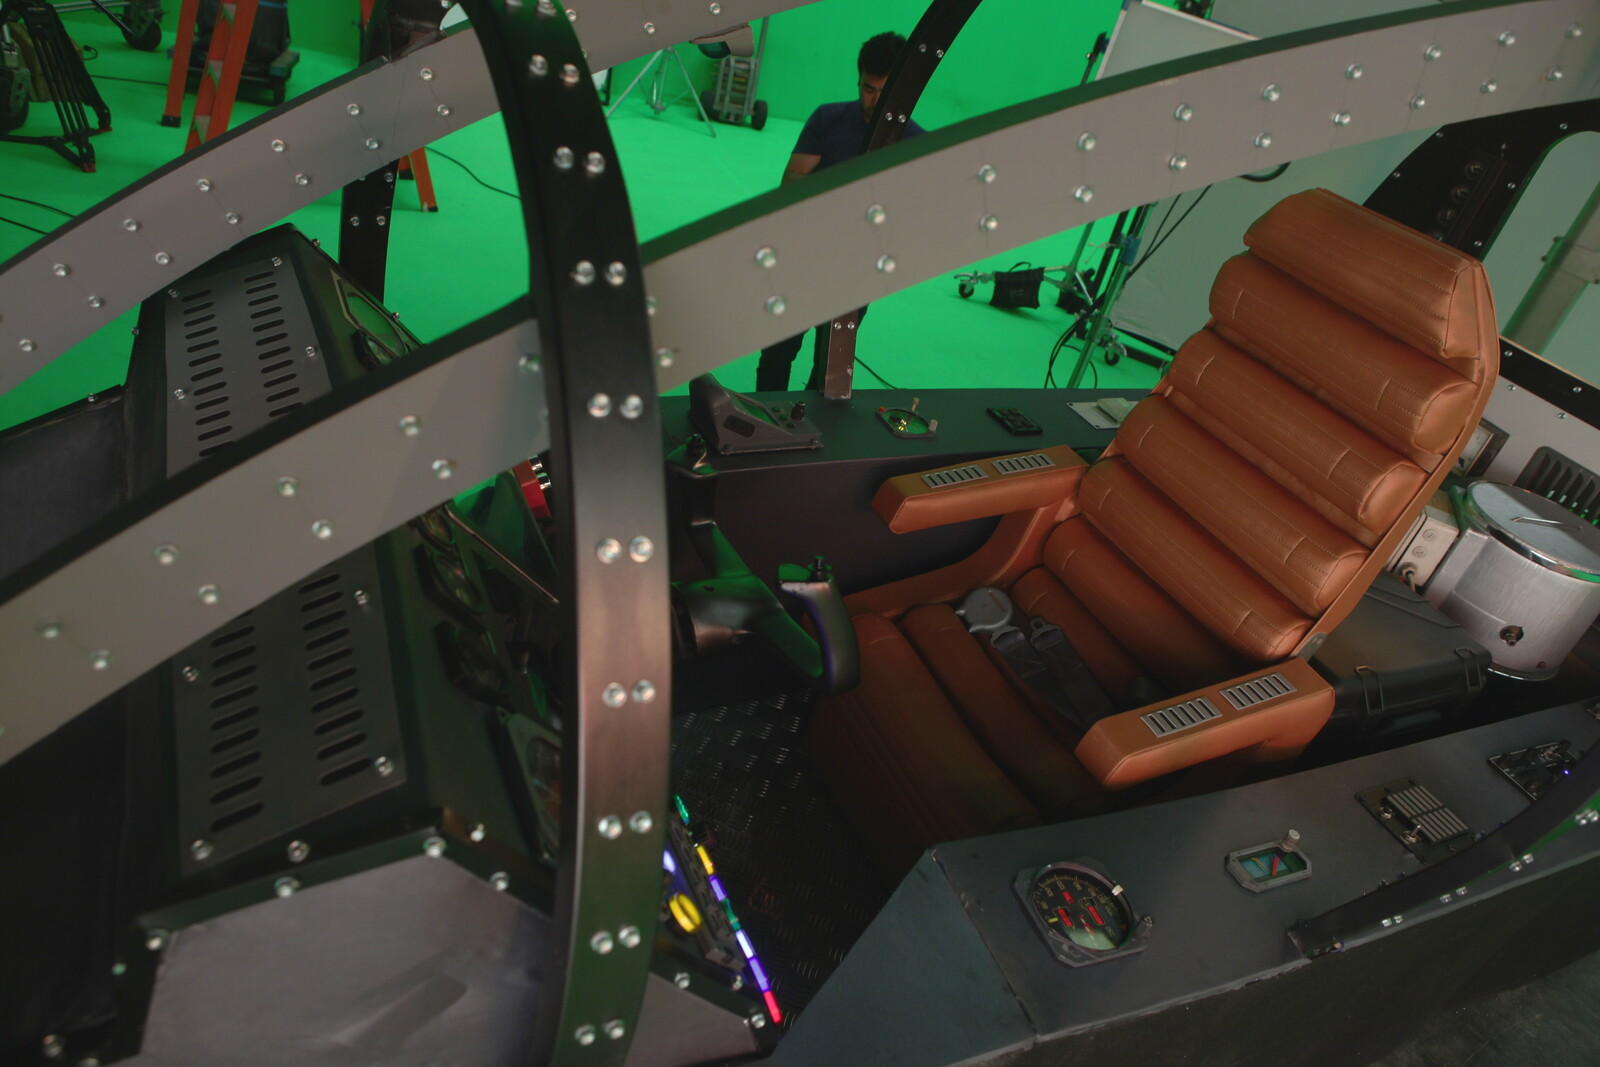 Reference picture of the cockpit